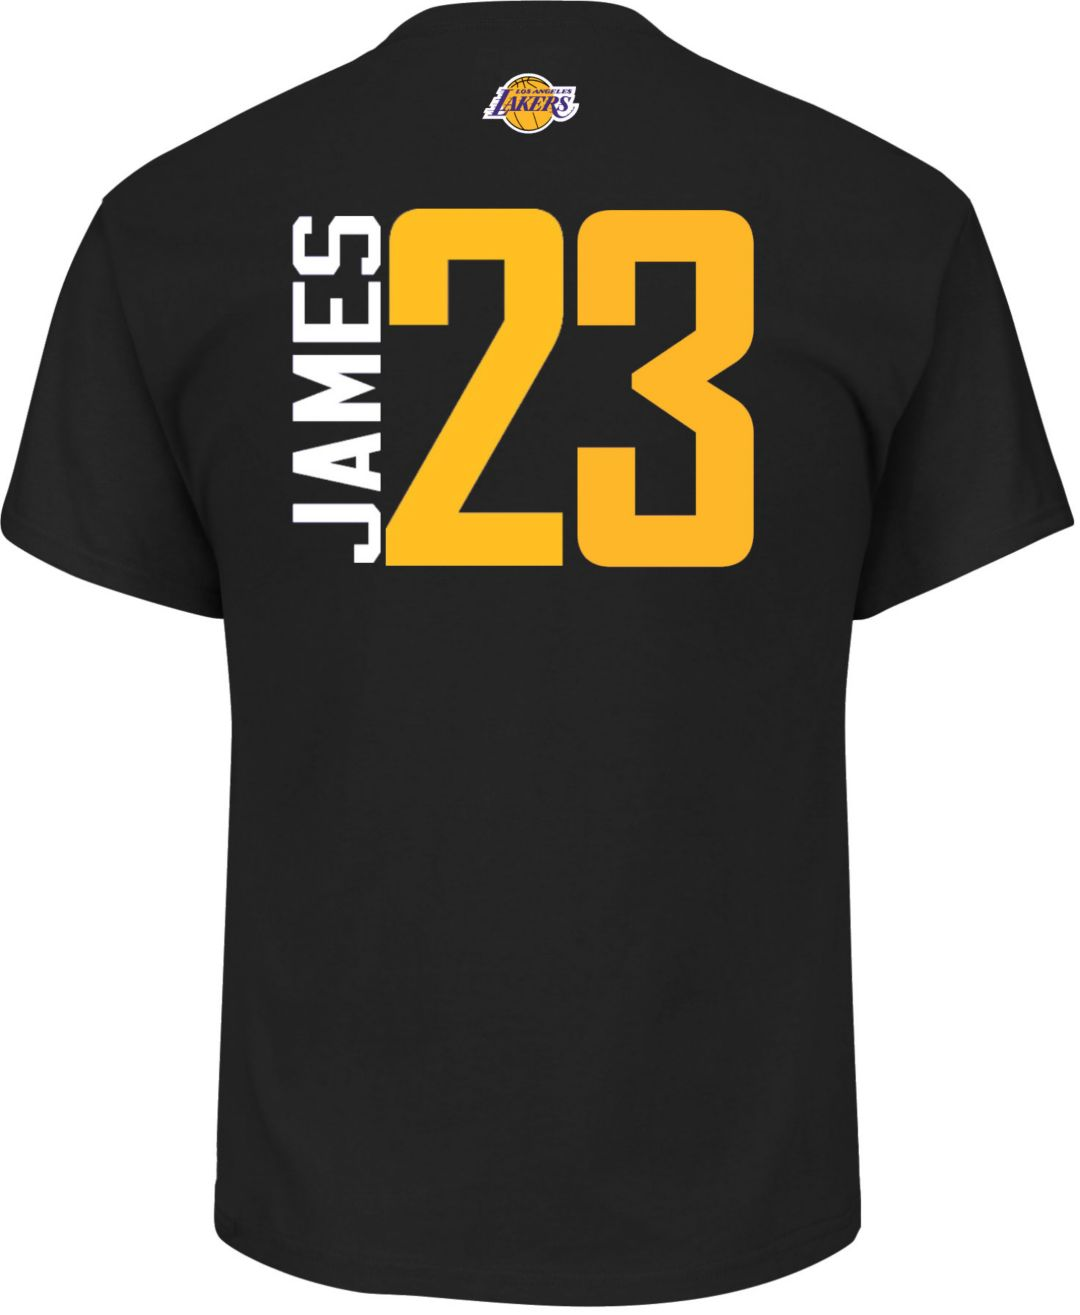 official photos 08e33 8b7ad Majestic Men's Los Angeles Lakers LeBron James #23 Black T-Shirt